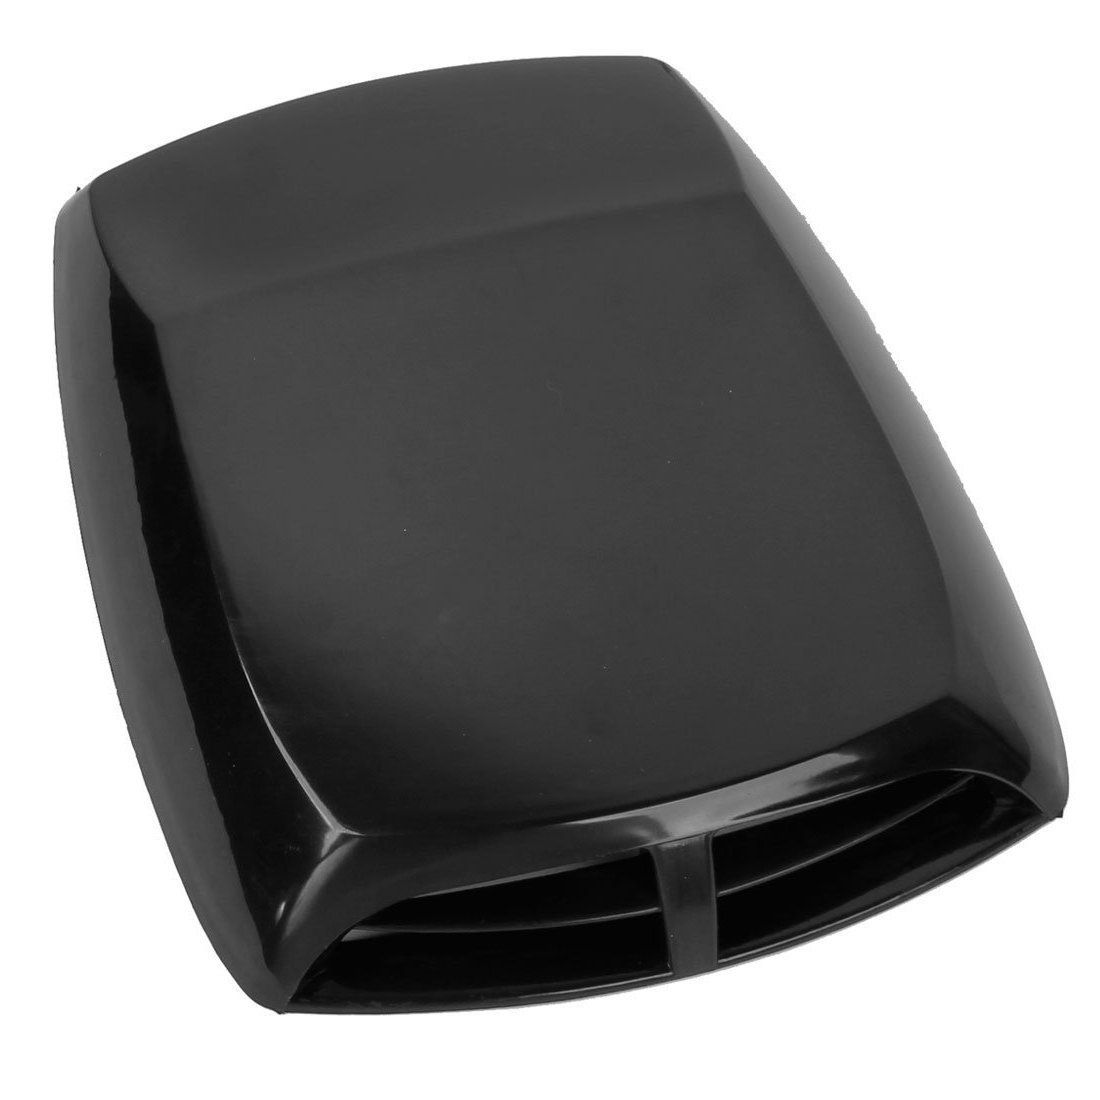 SODIAL Universal Car Air Flow Intake Scoop Turbo Bonnet Vent Cover Hood Black R Air Flow Vent Hood Scoop